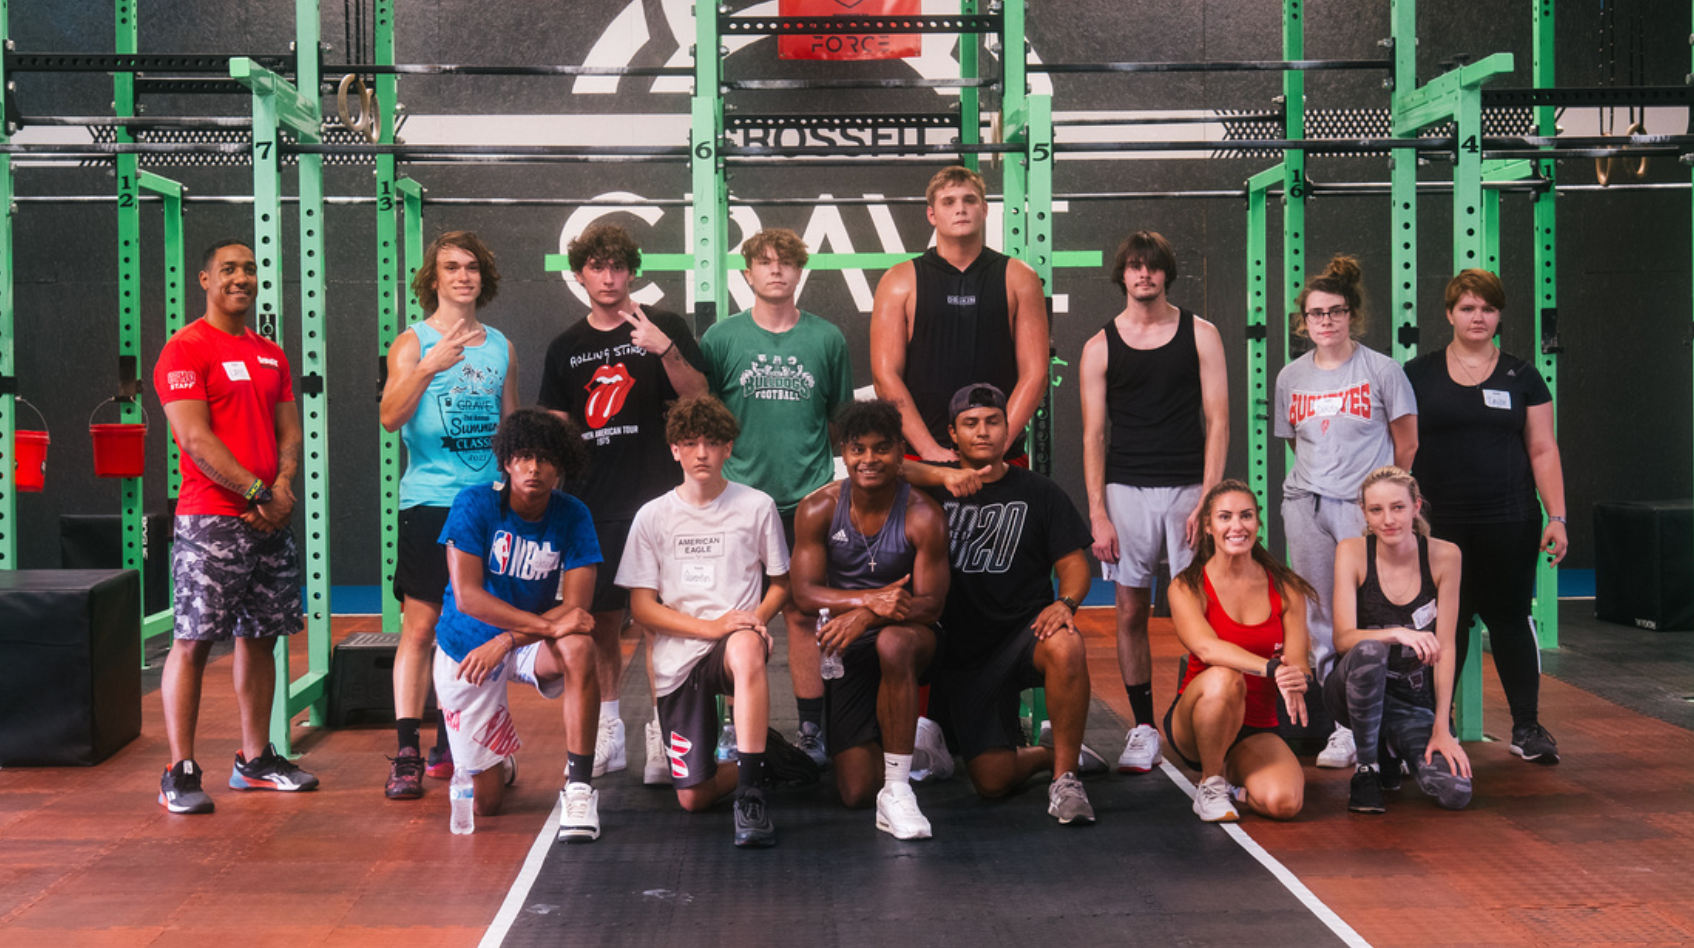 Participants at the CrossFit Scholarship Level 1